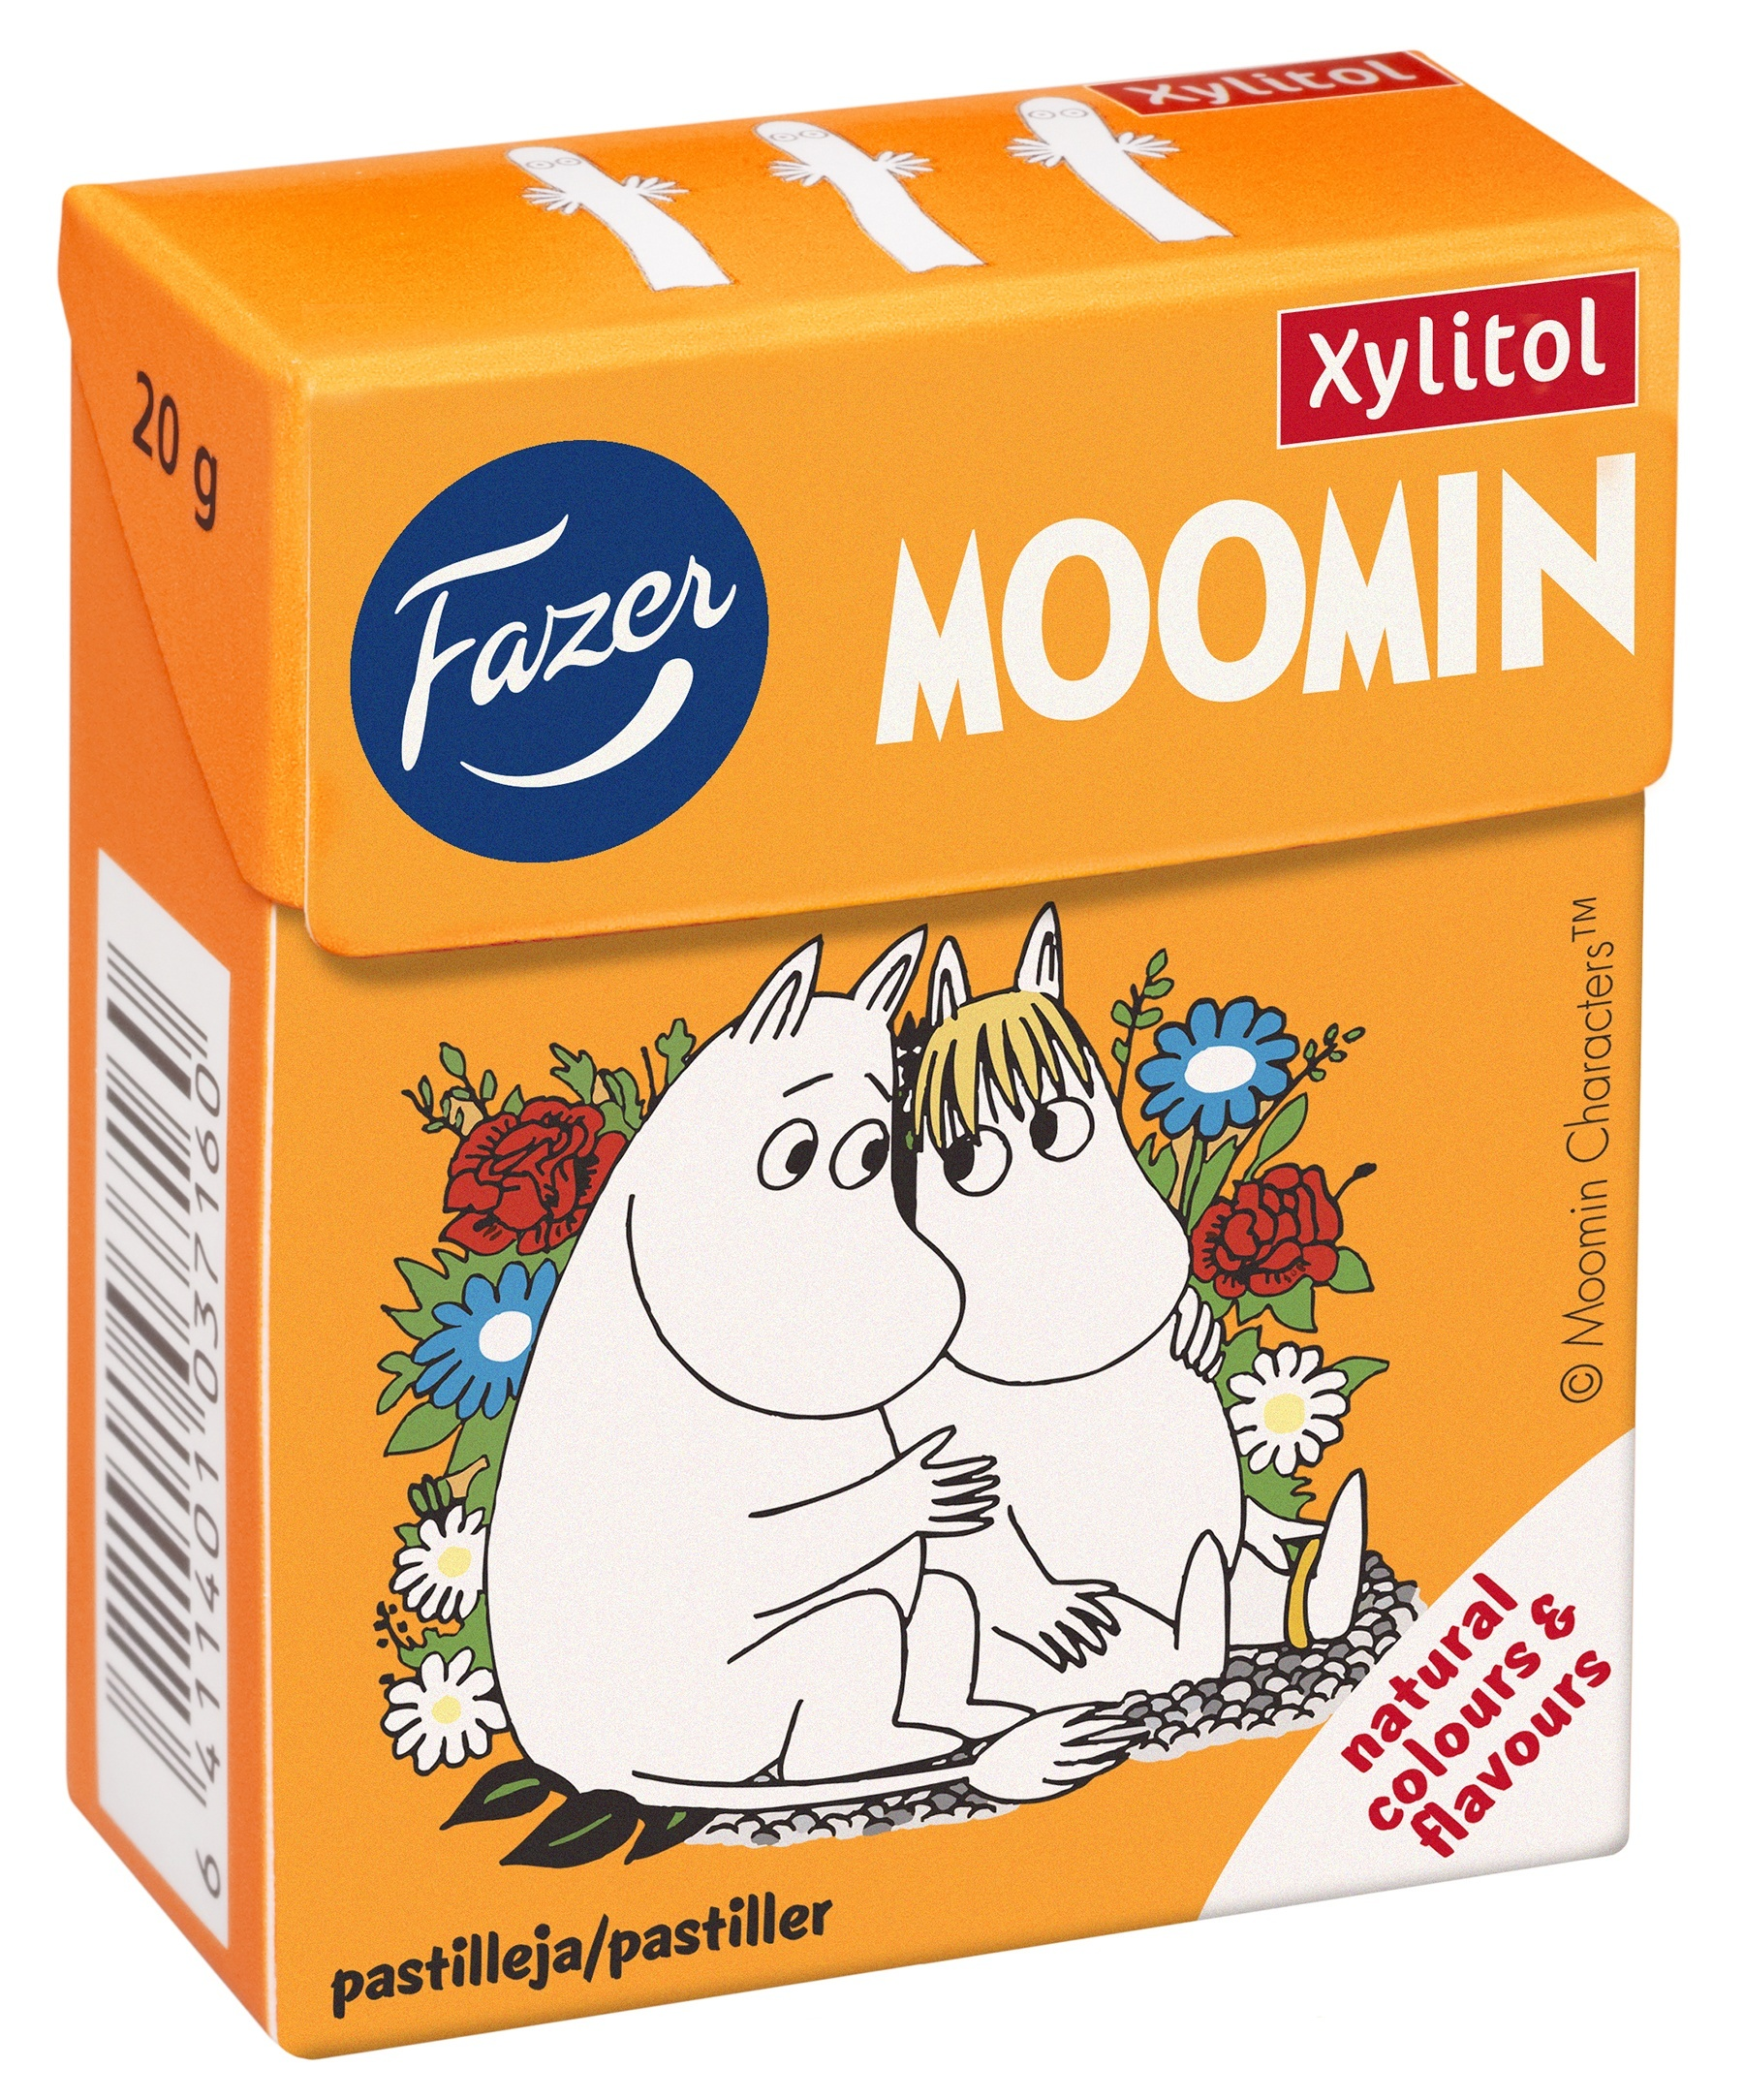 Fazer Moomin soft xylitol pastilles in 20 g box